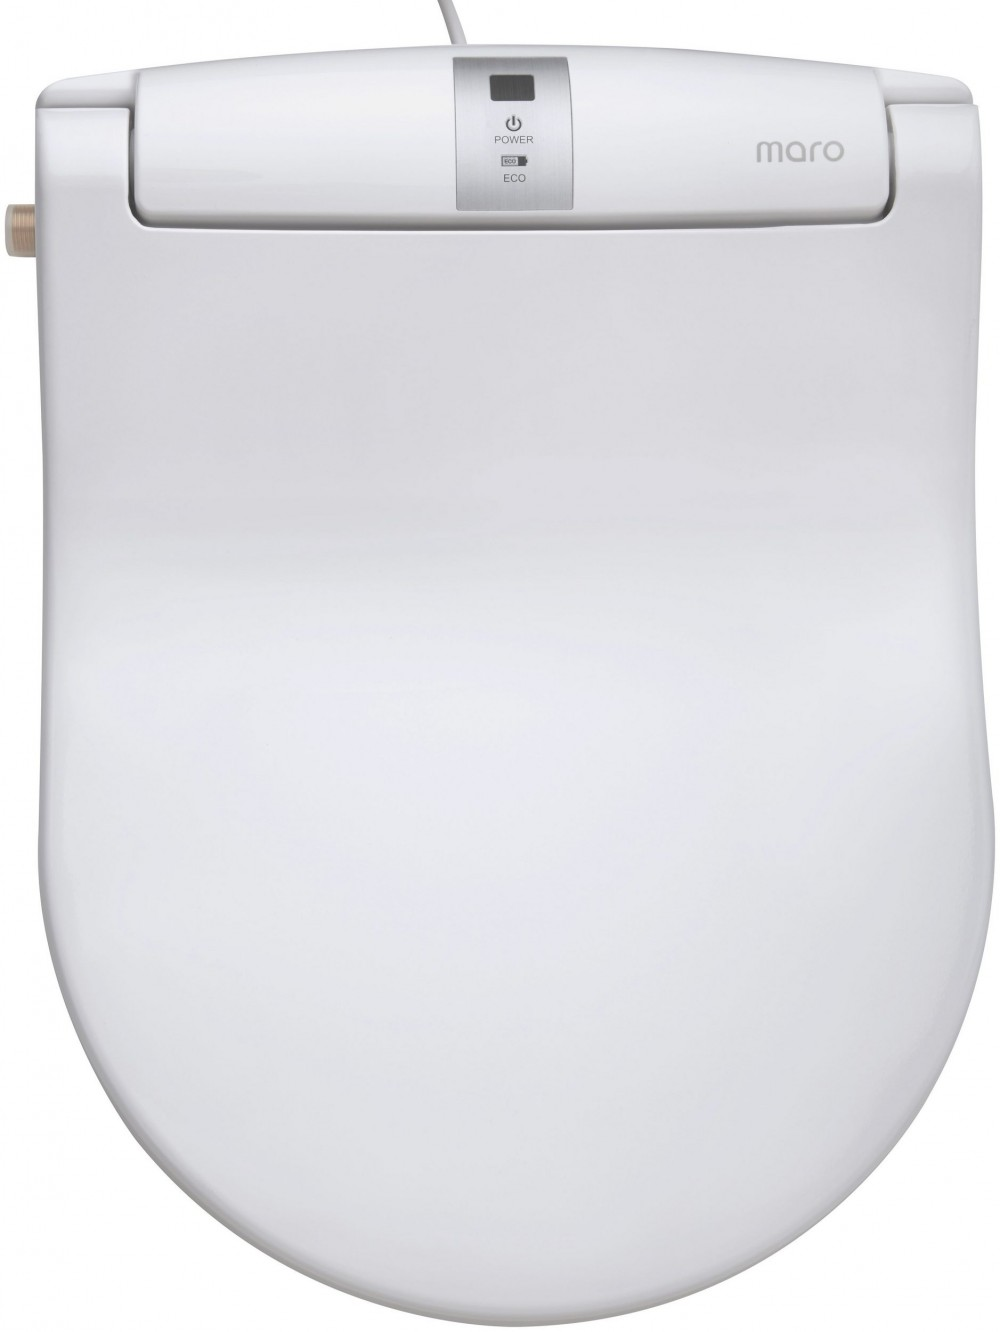 Maro d italia di600 bidet toilet shower seat uk